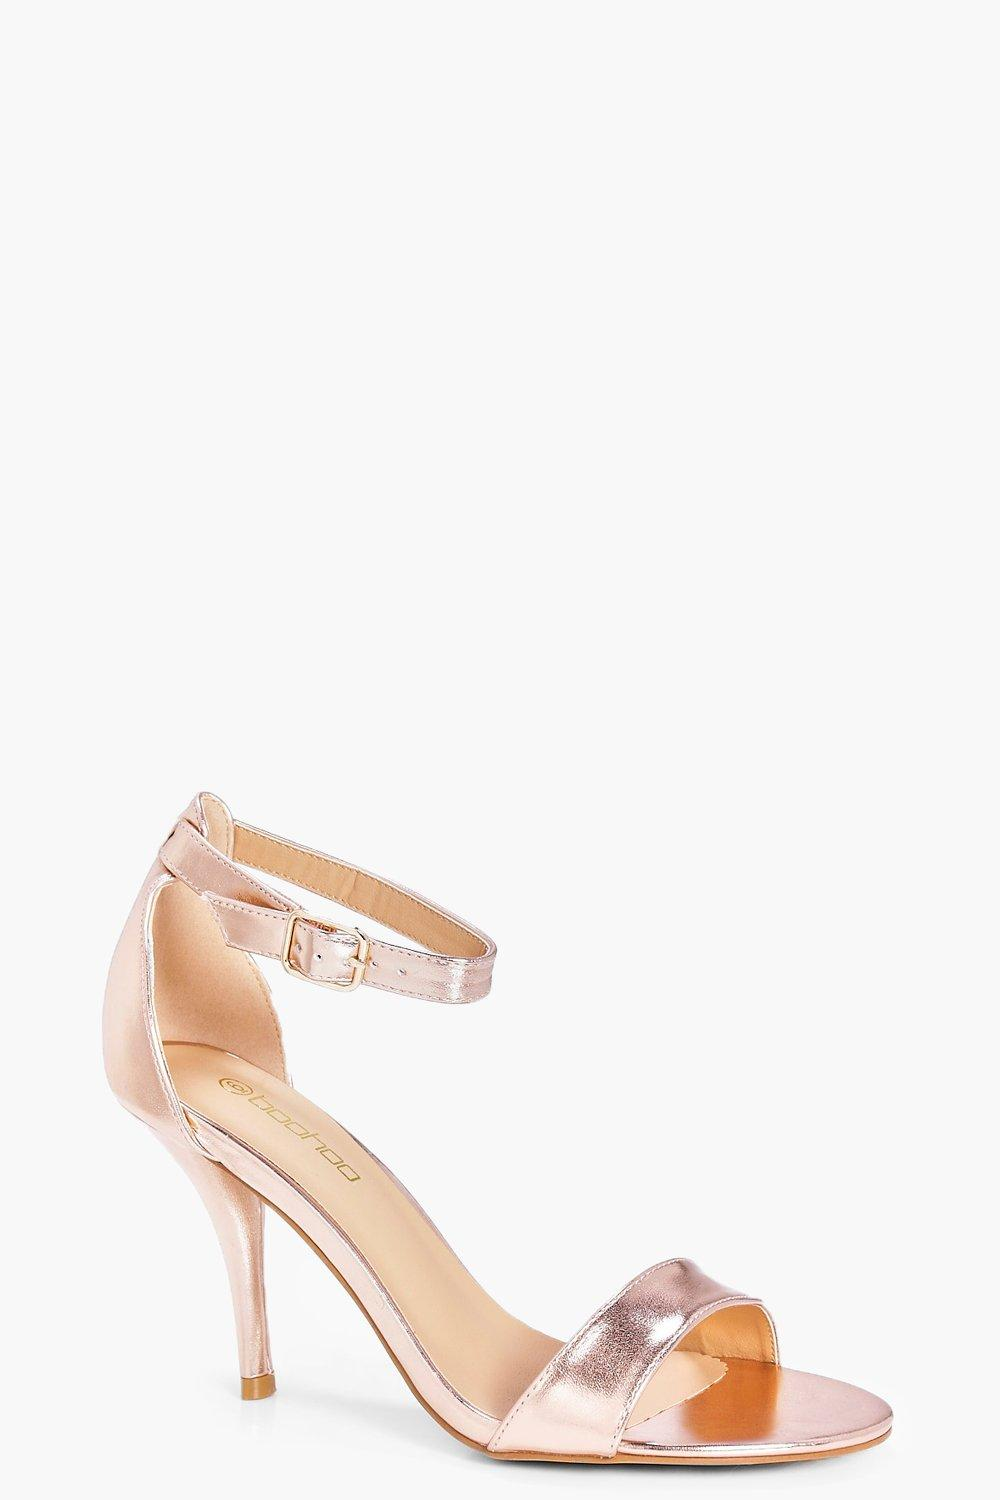 f137e8505f Wide Fit Metallic Mid Heel Two Part Heels. Womens Rose gold ...